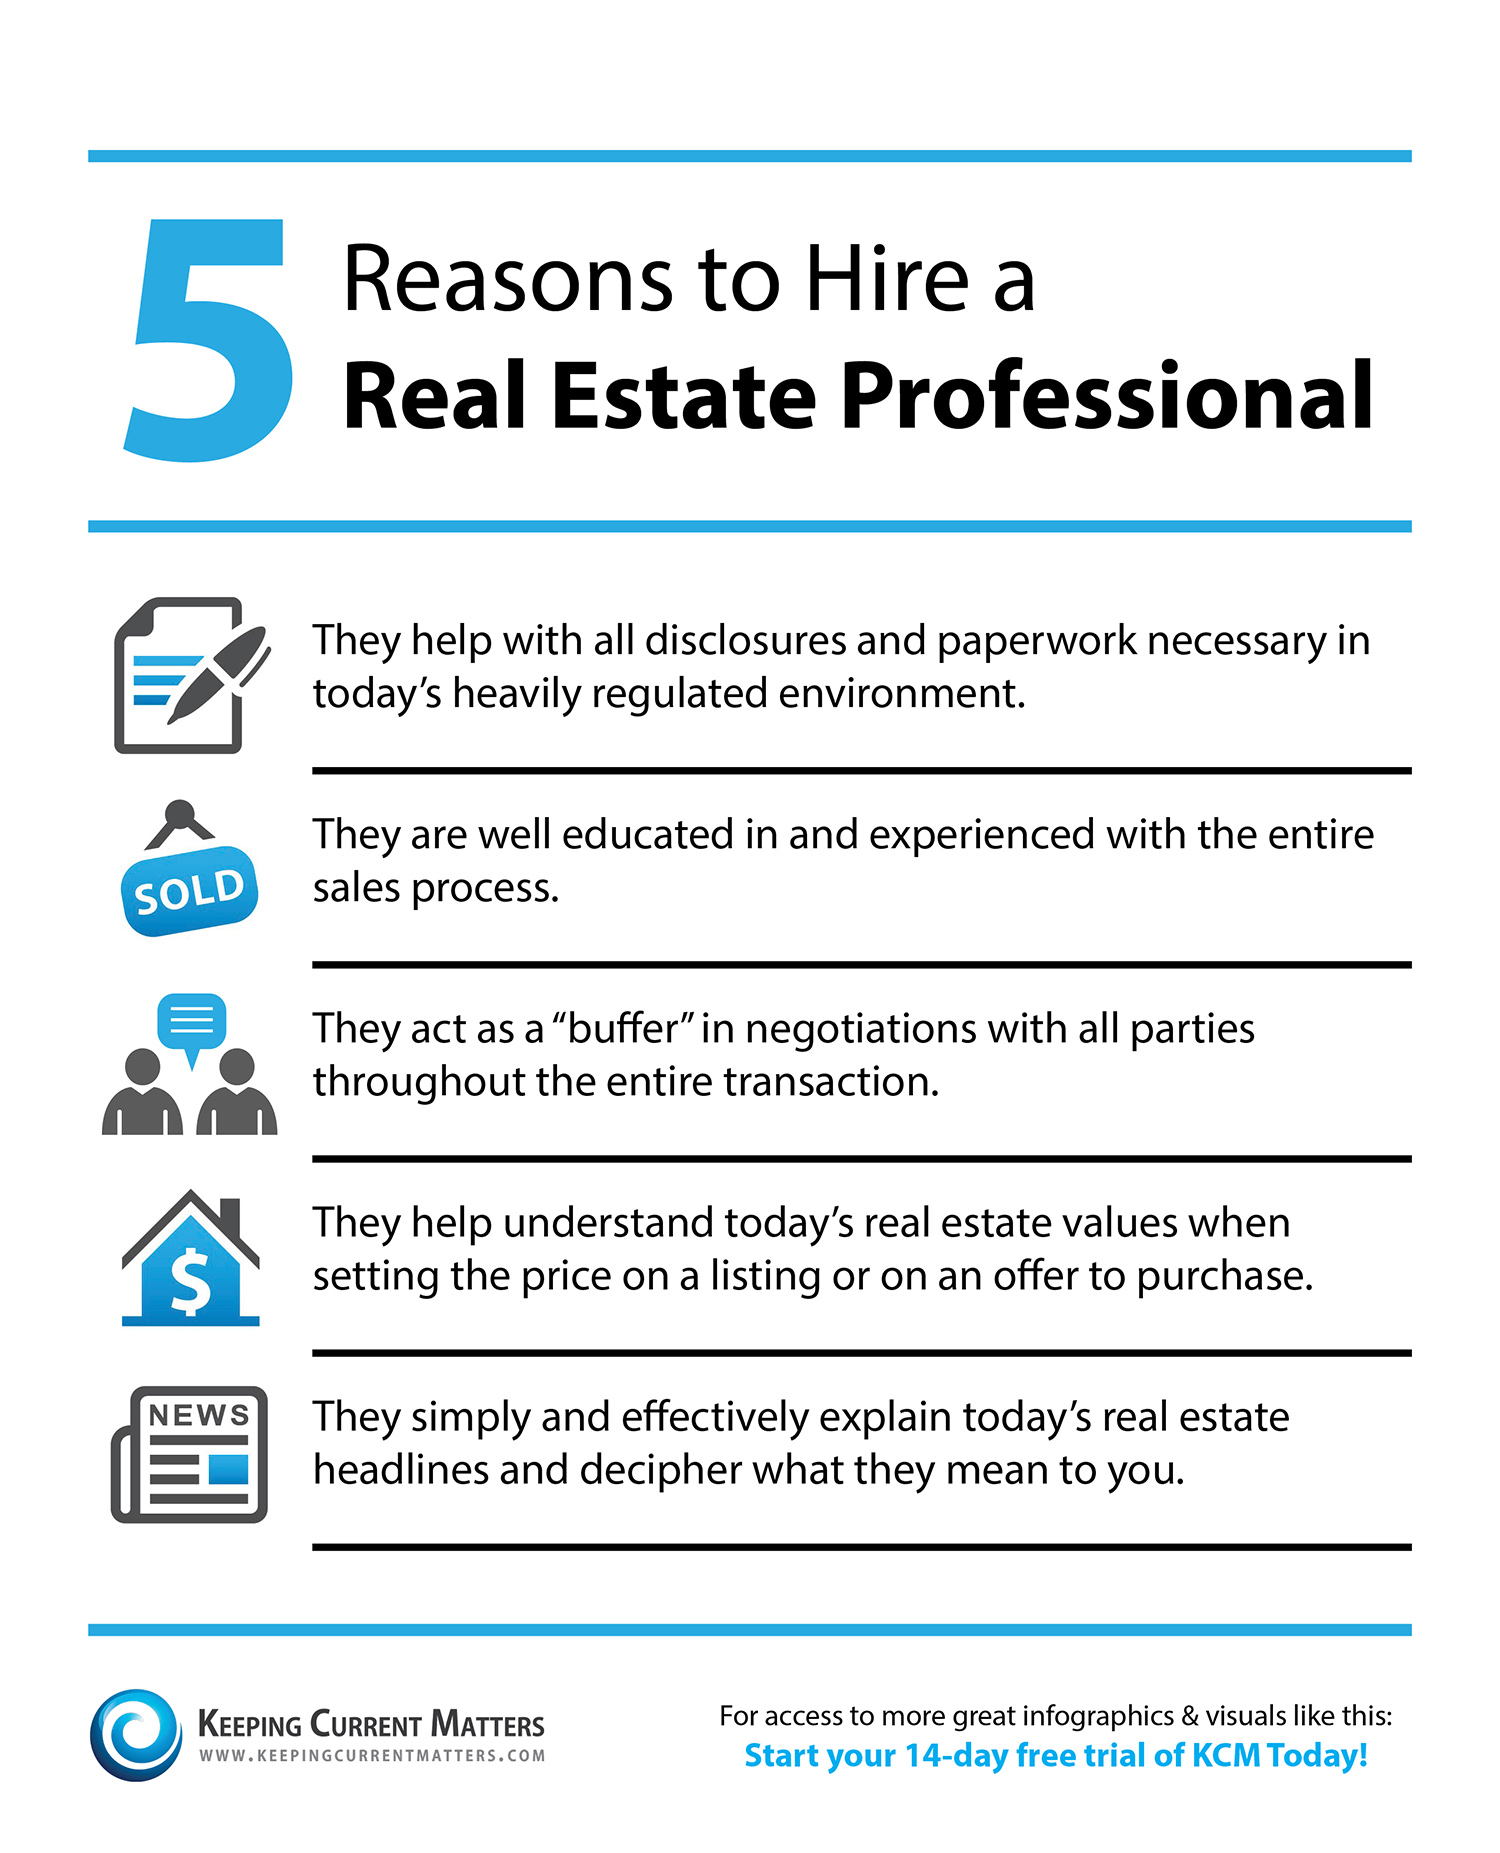 reasons to hire a real estate professional infographic keeping